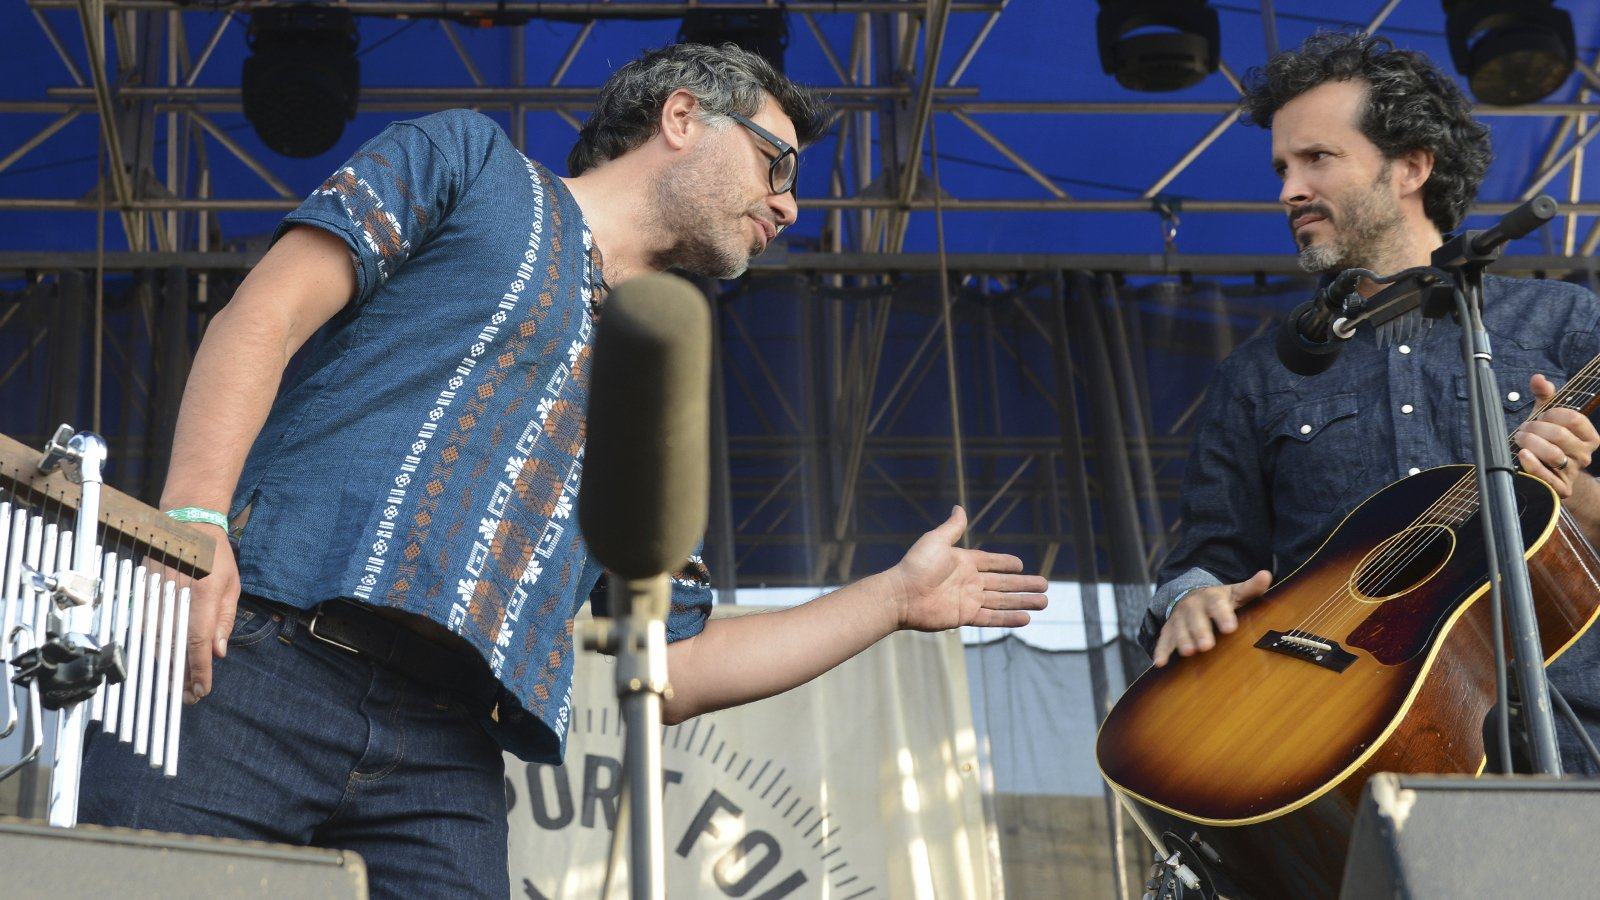 After Broken Hand Flight Of The Conchords Tour Postponed